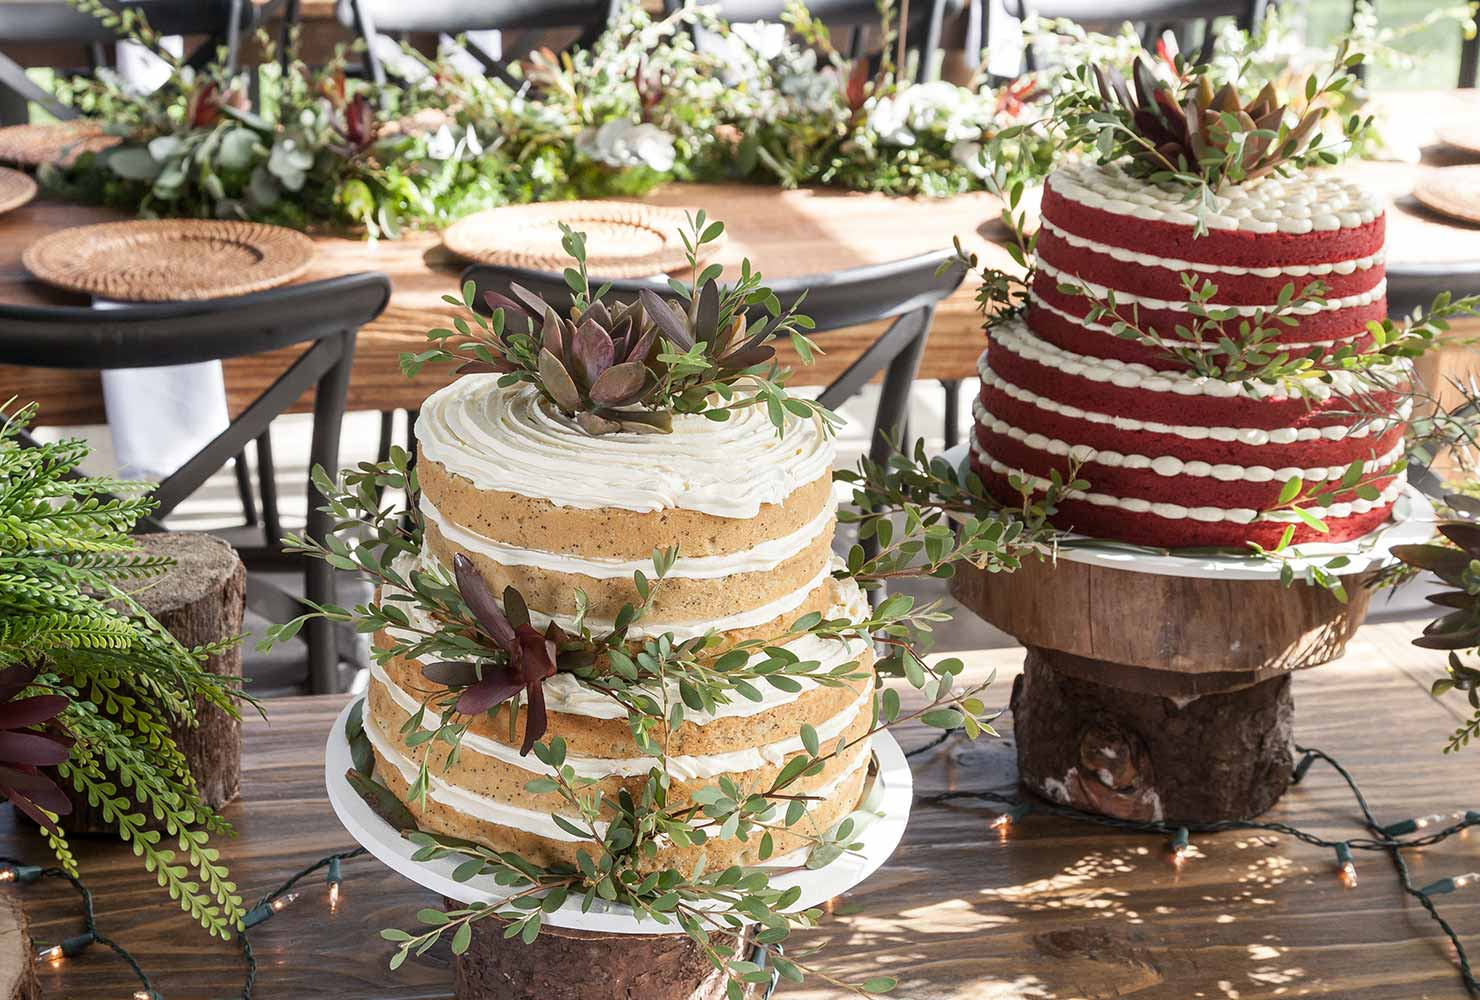 Tall rustic wedding cakes on table.